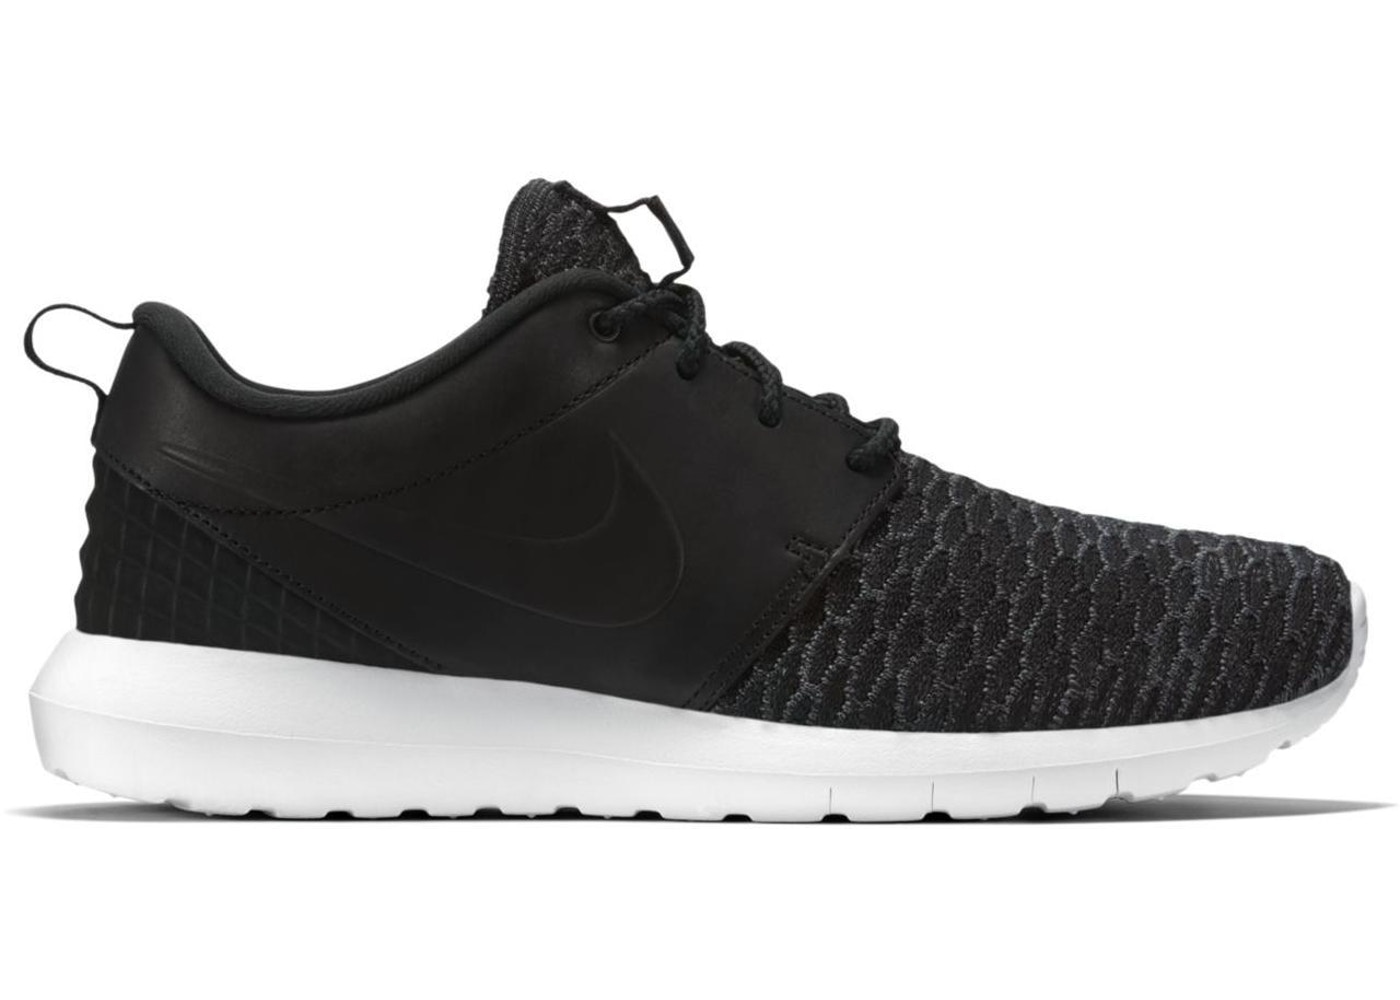 new product a8a09 16f4a Sell. or Ask. Size  10. View All Bids. Nike Roshe Run Flyknit PRM Black  White